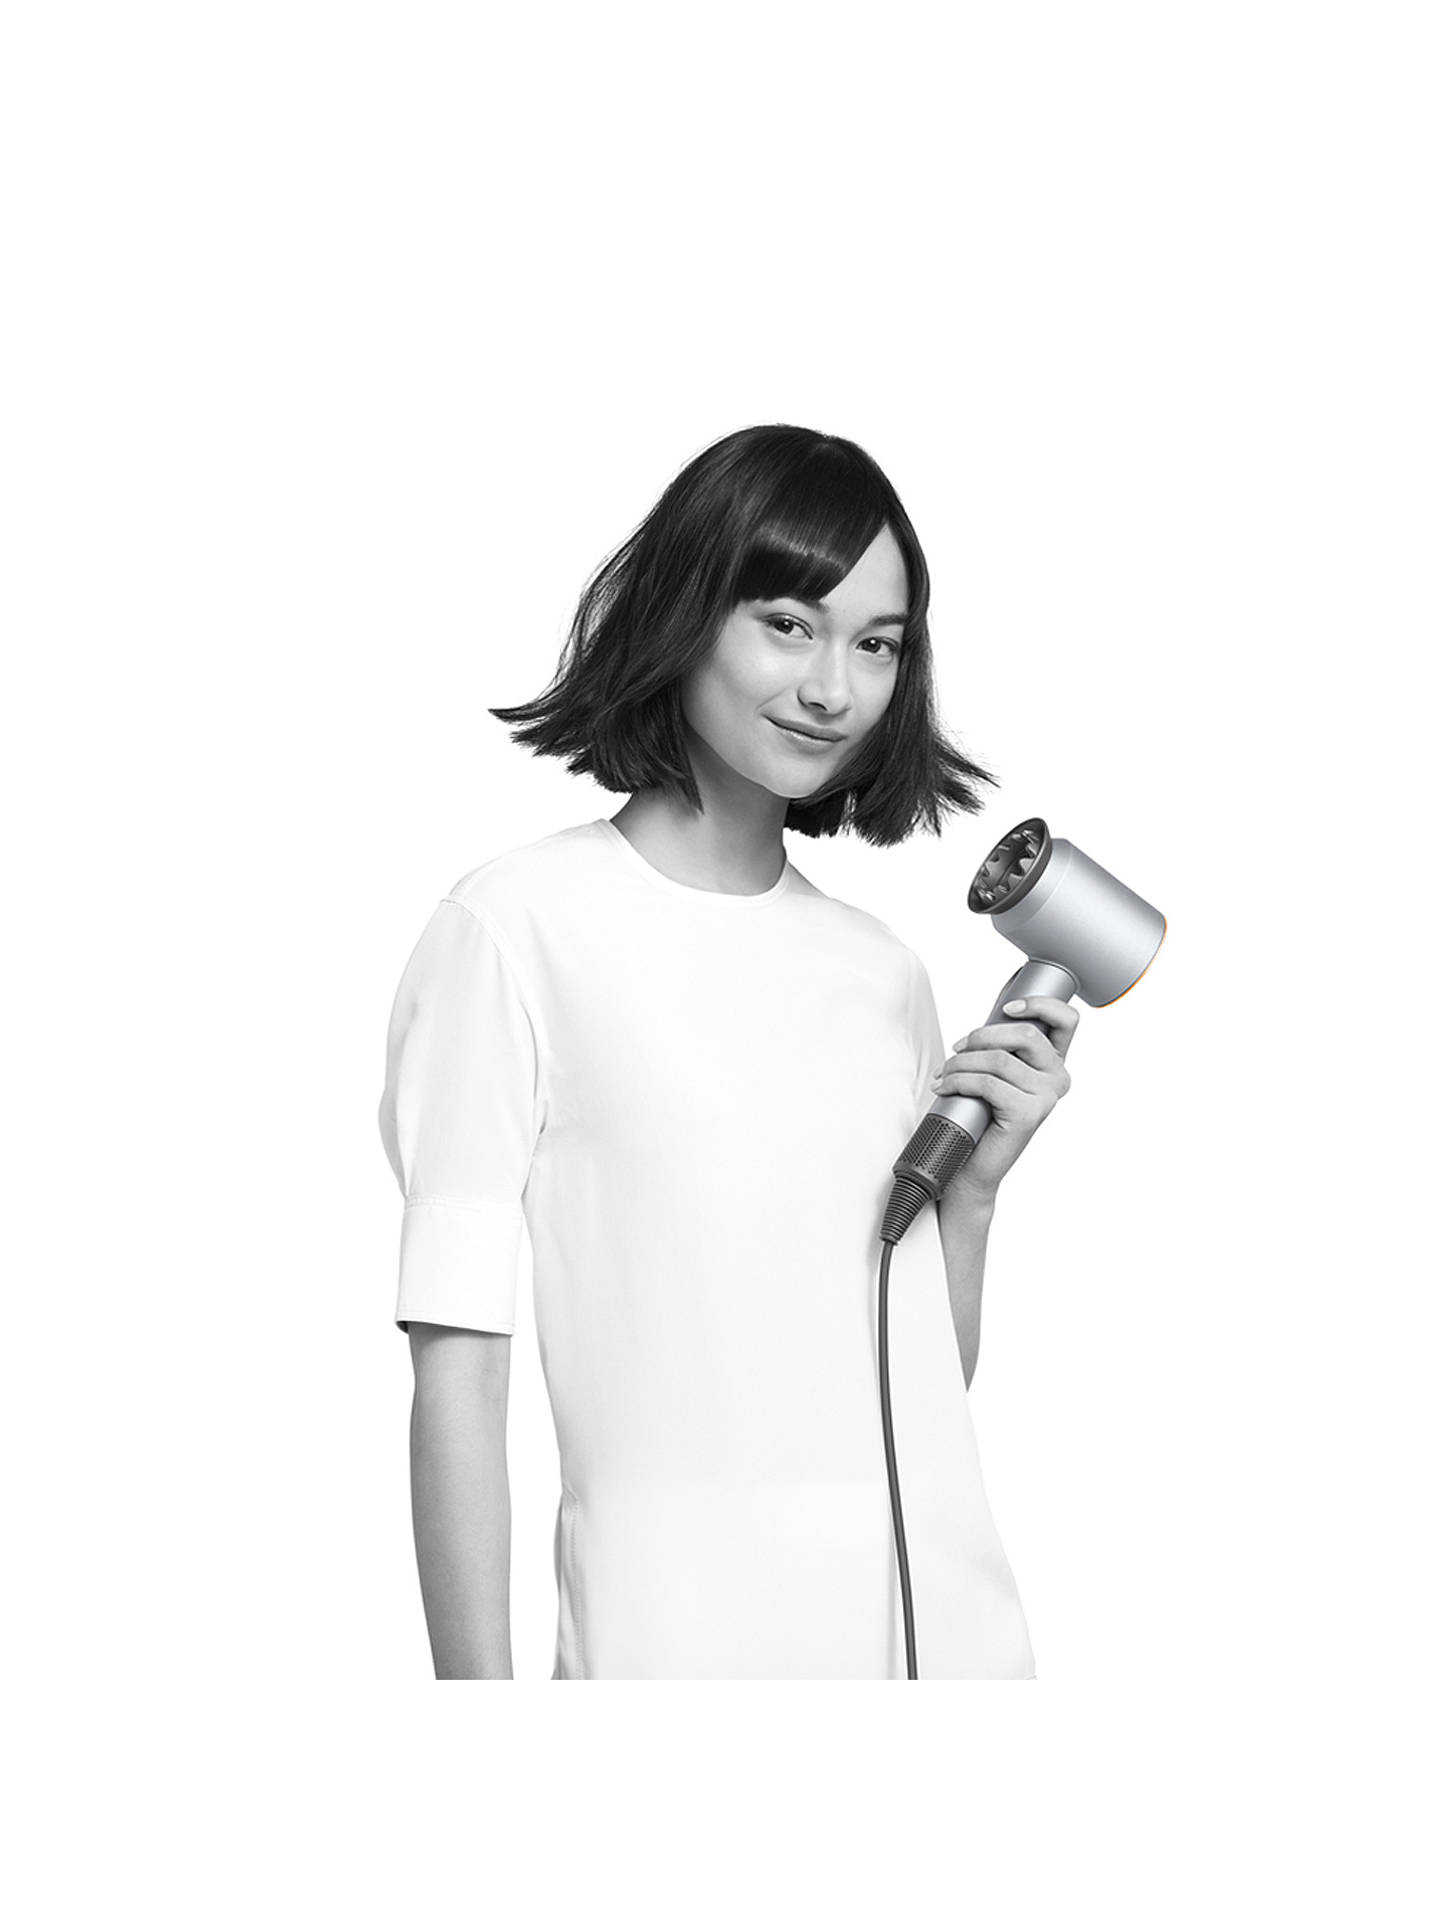 Buy Dyson Supersonic™ Hair Dryer Exclusive Copper Gift Edition with Travel Bag Online at johnlewis.com